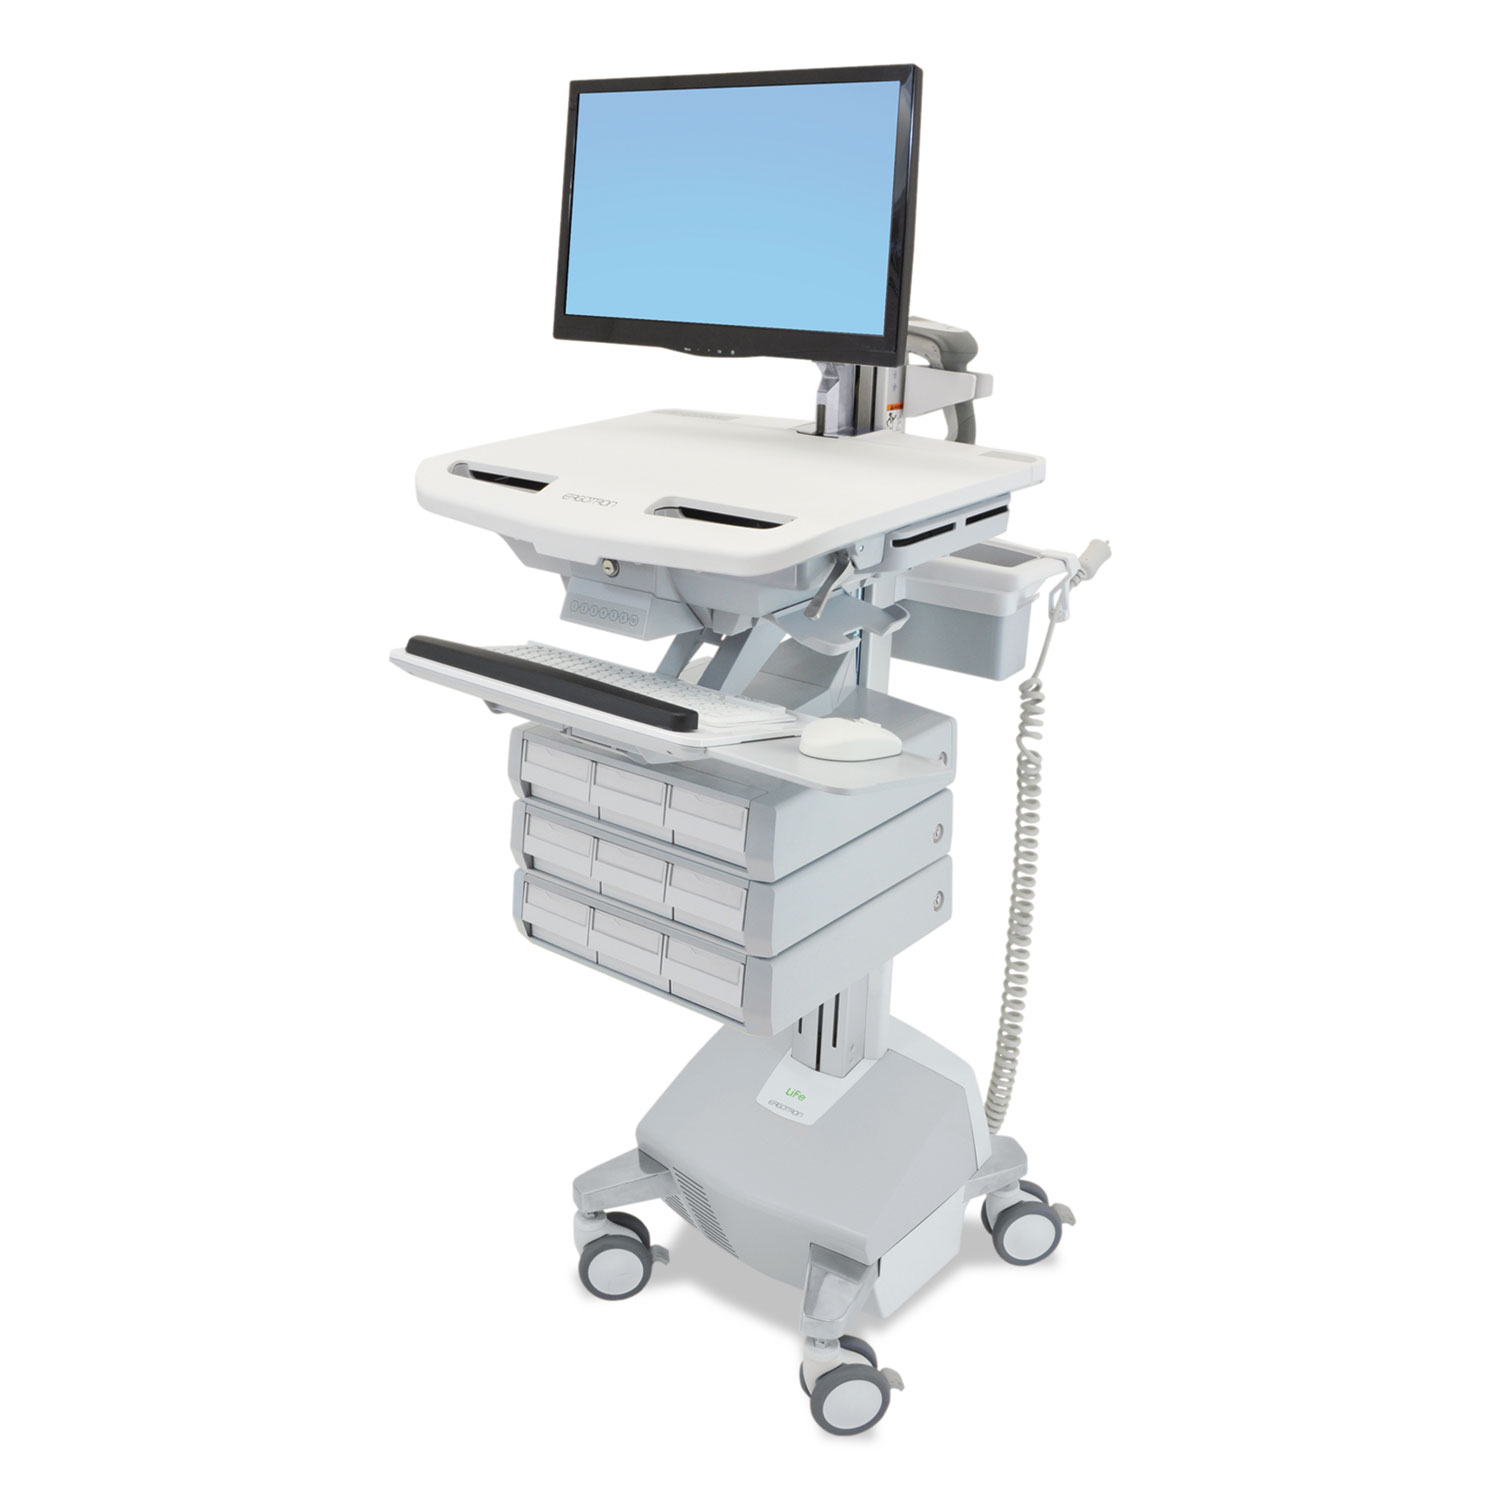 Styleview Life Powered Cart W/LCD Arm, 9 Drawer, 22.5 X 31 X 50.5-62, White/Gray